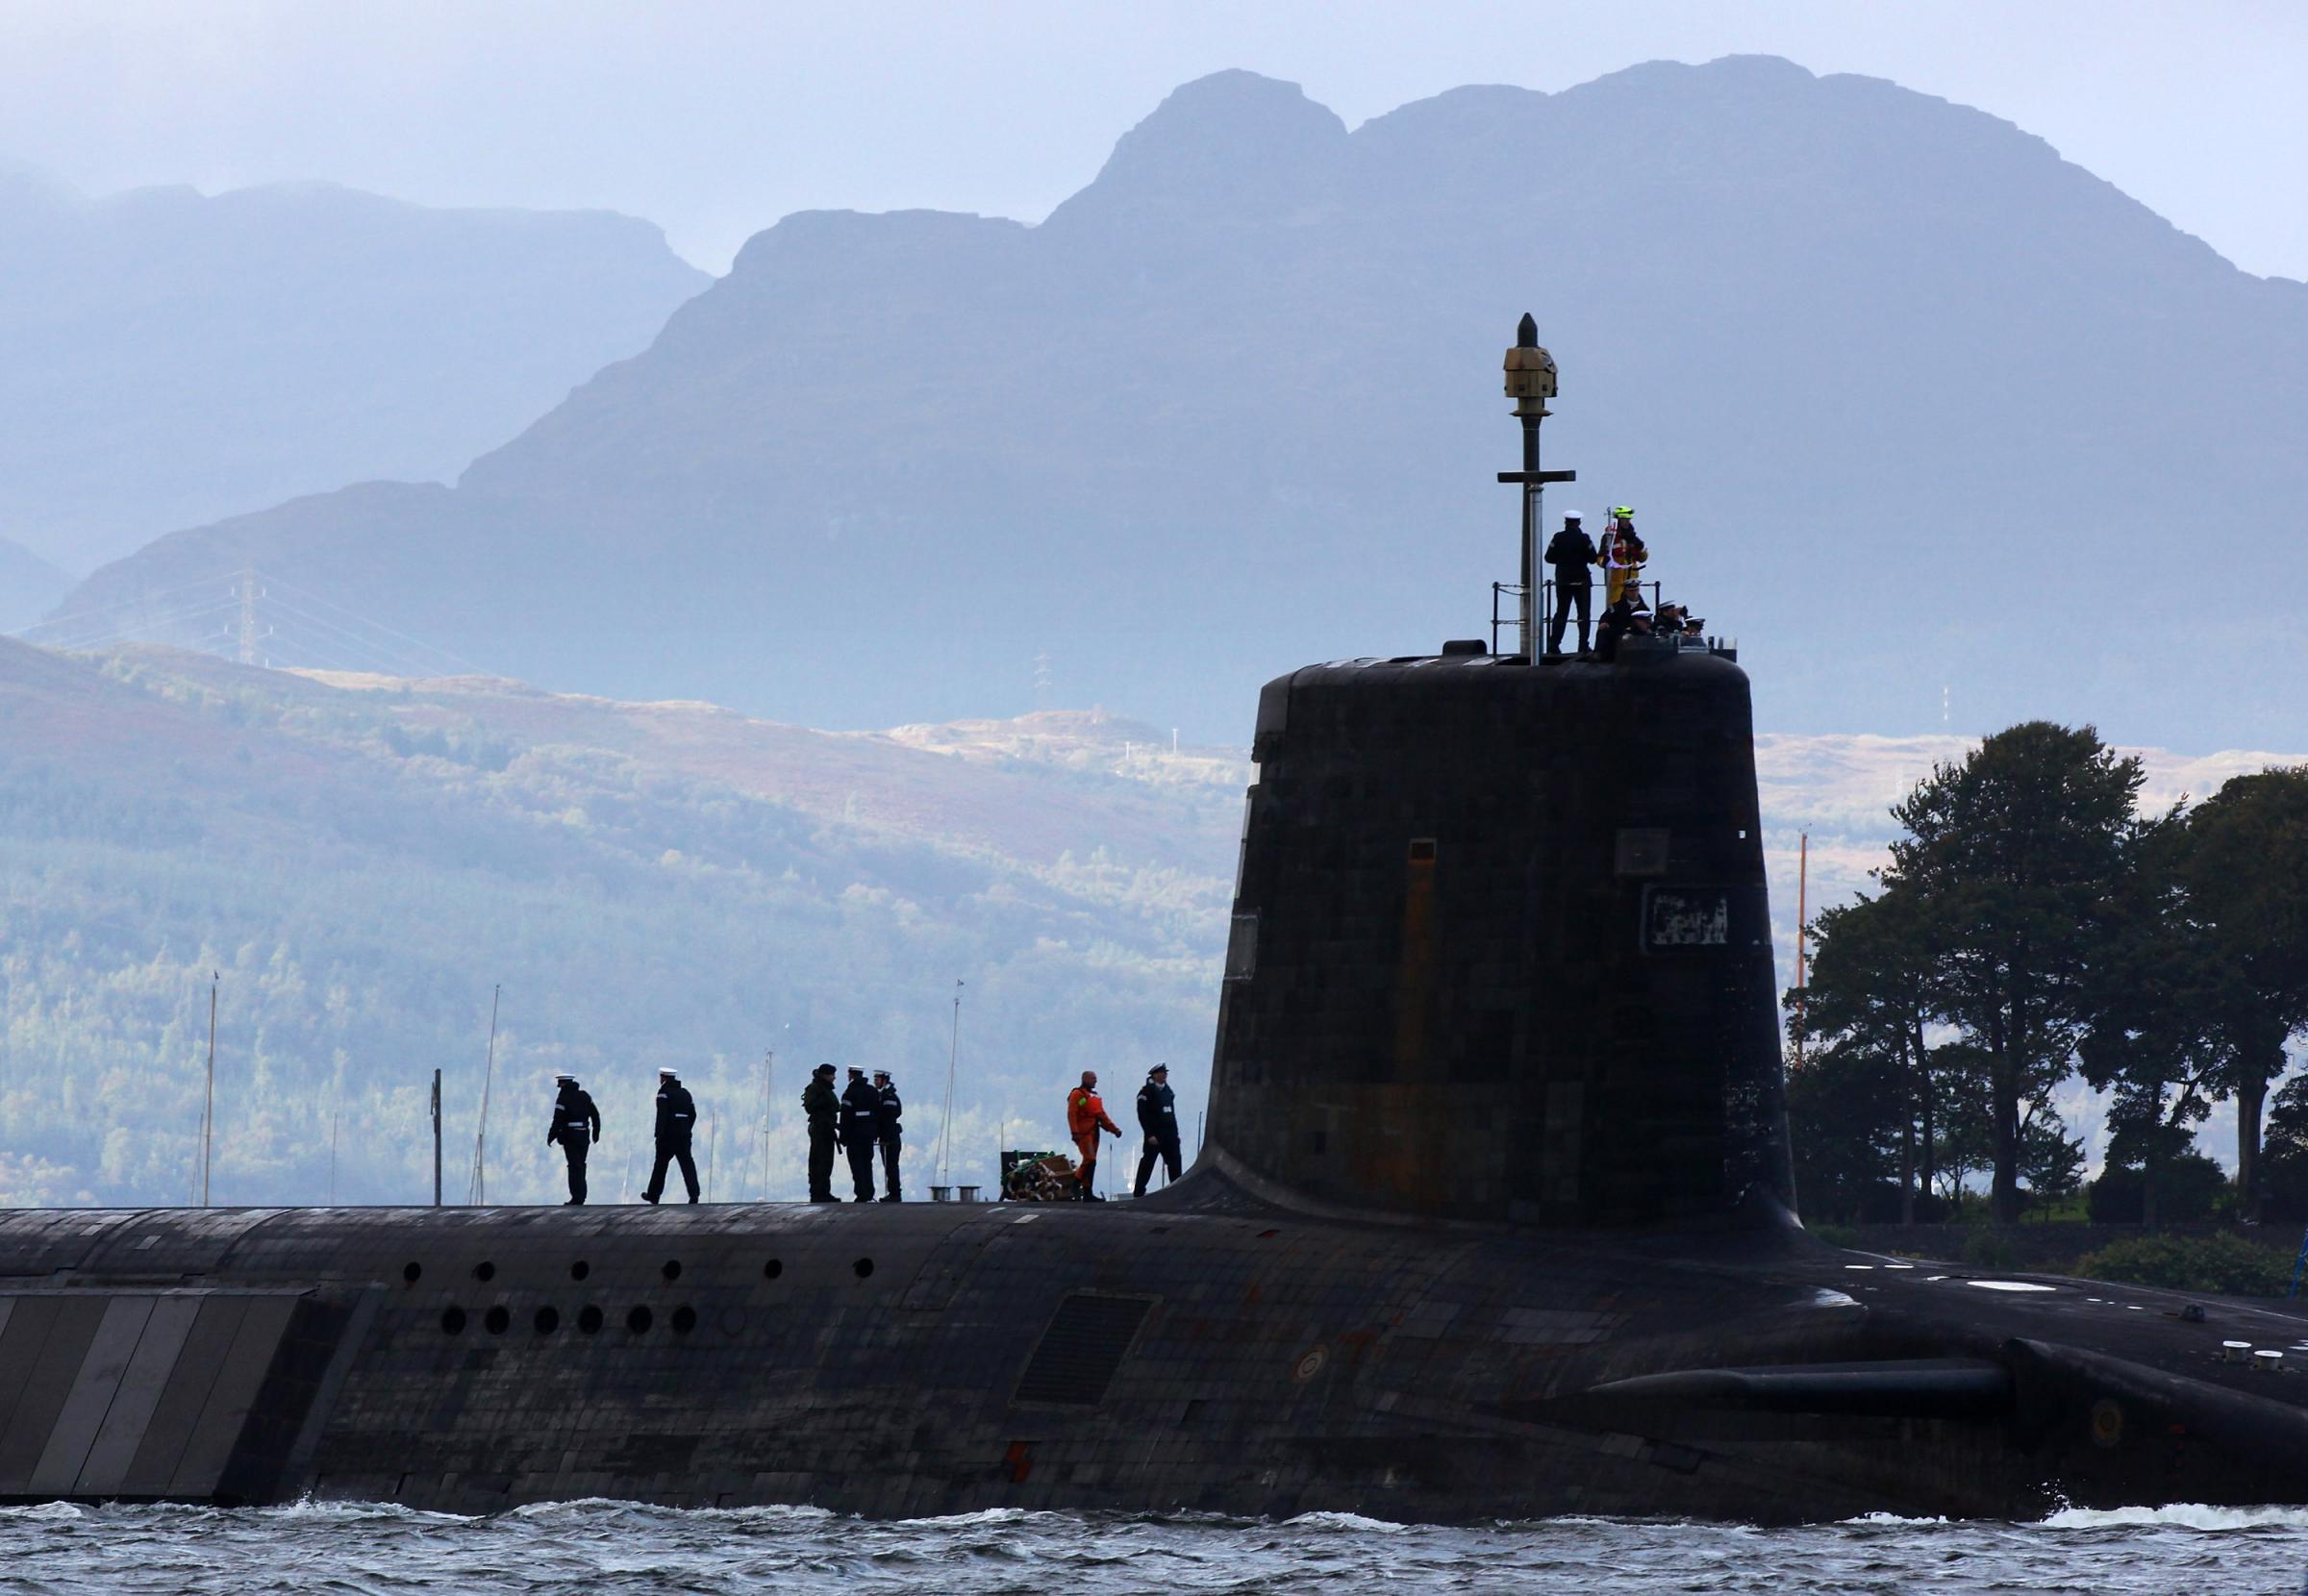 Scotland's wish to be rid of Trident will be completely ignored